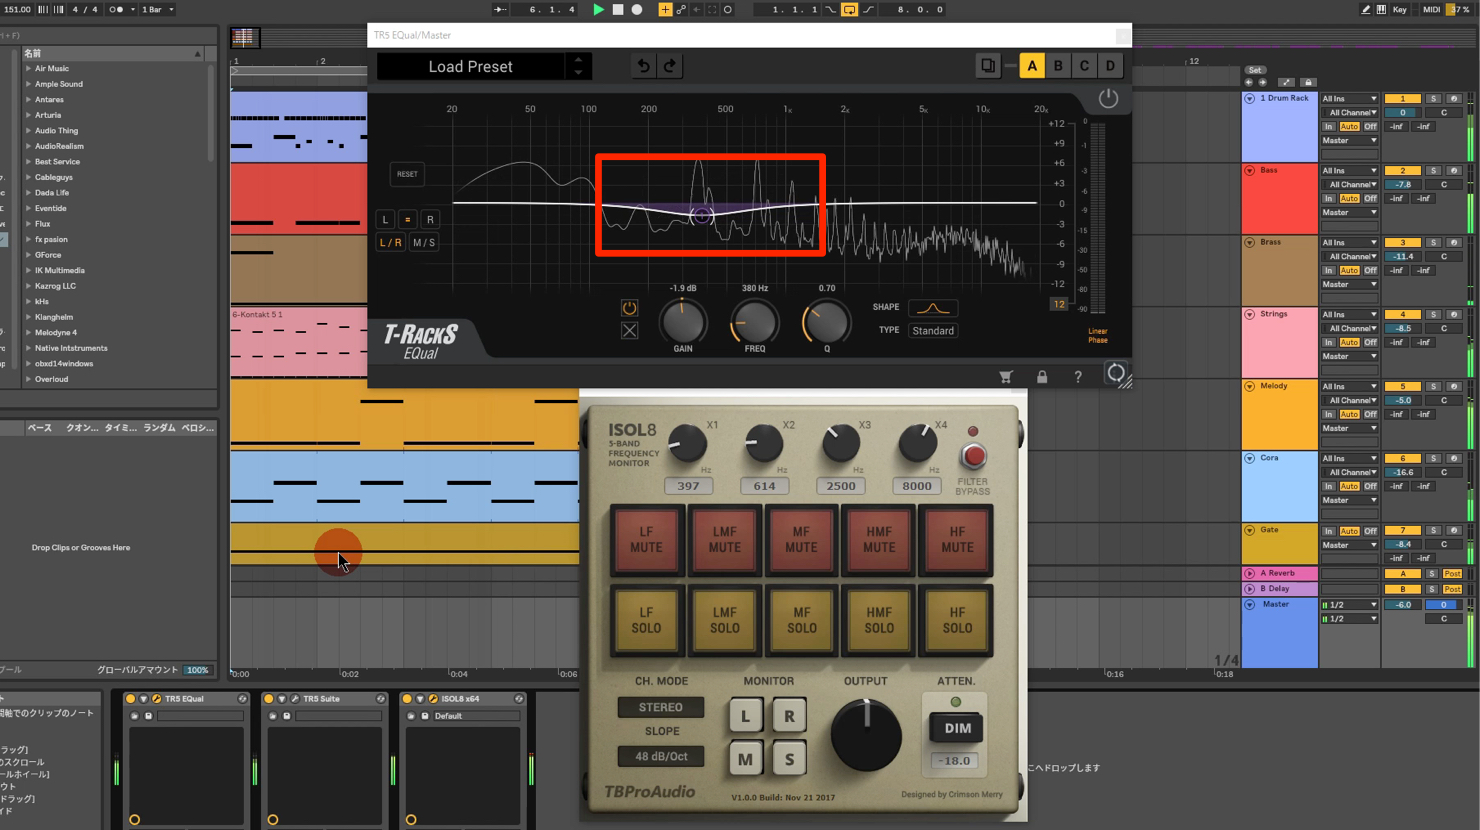 TBProAudio-ISOL8-How-to-7